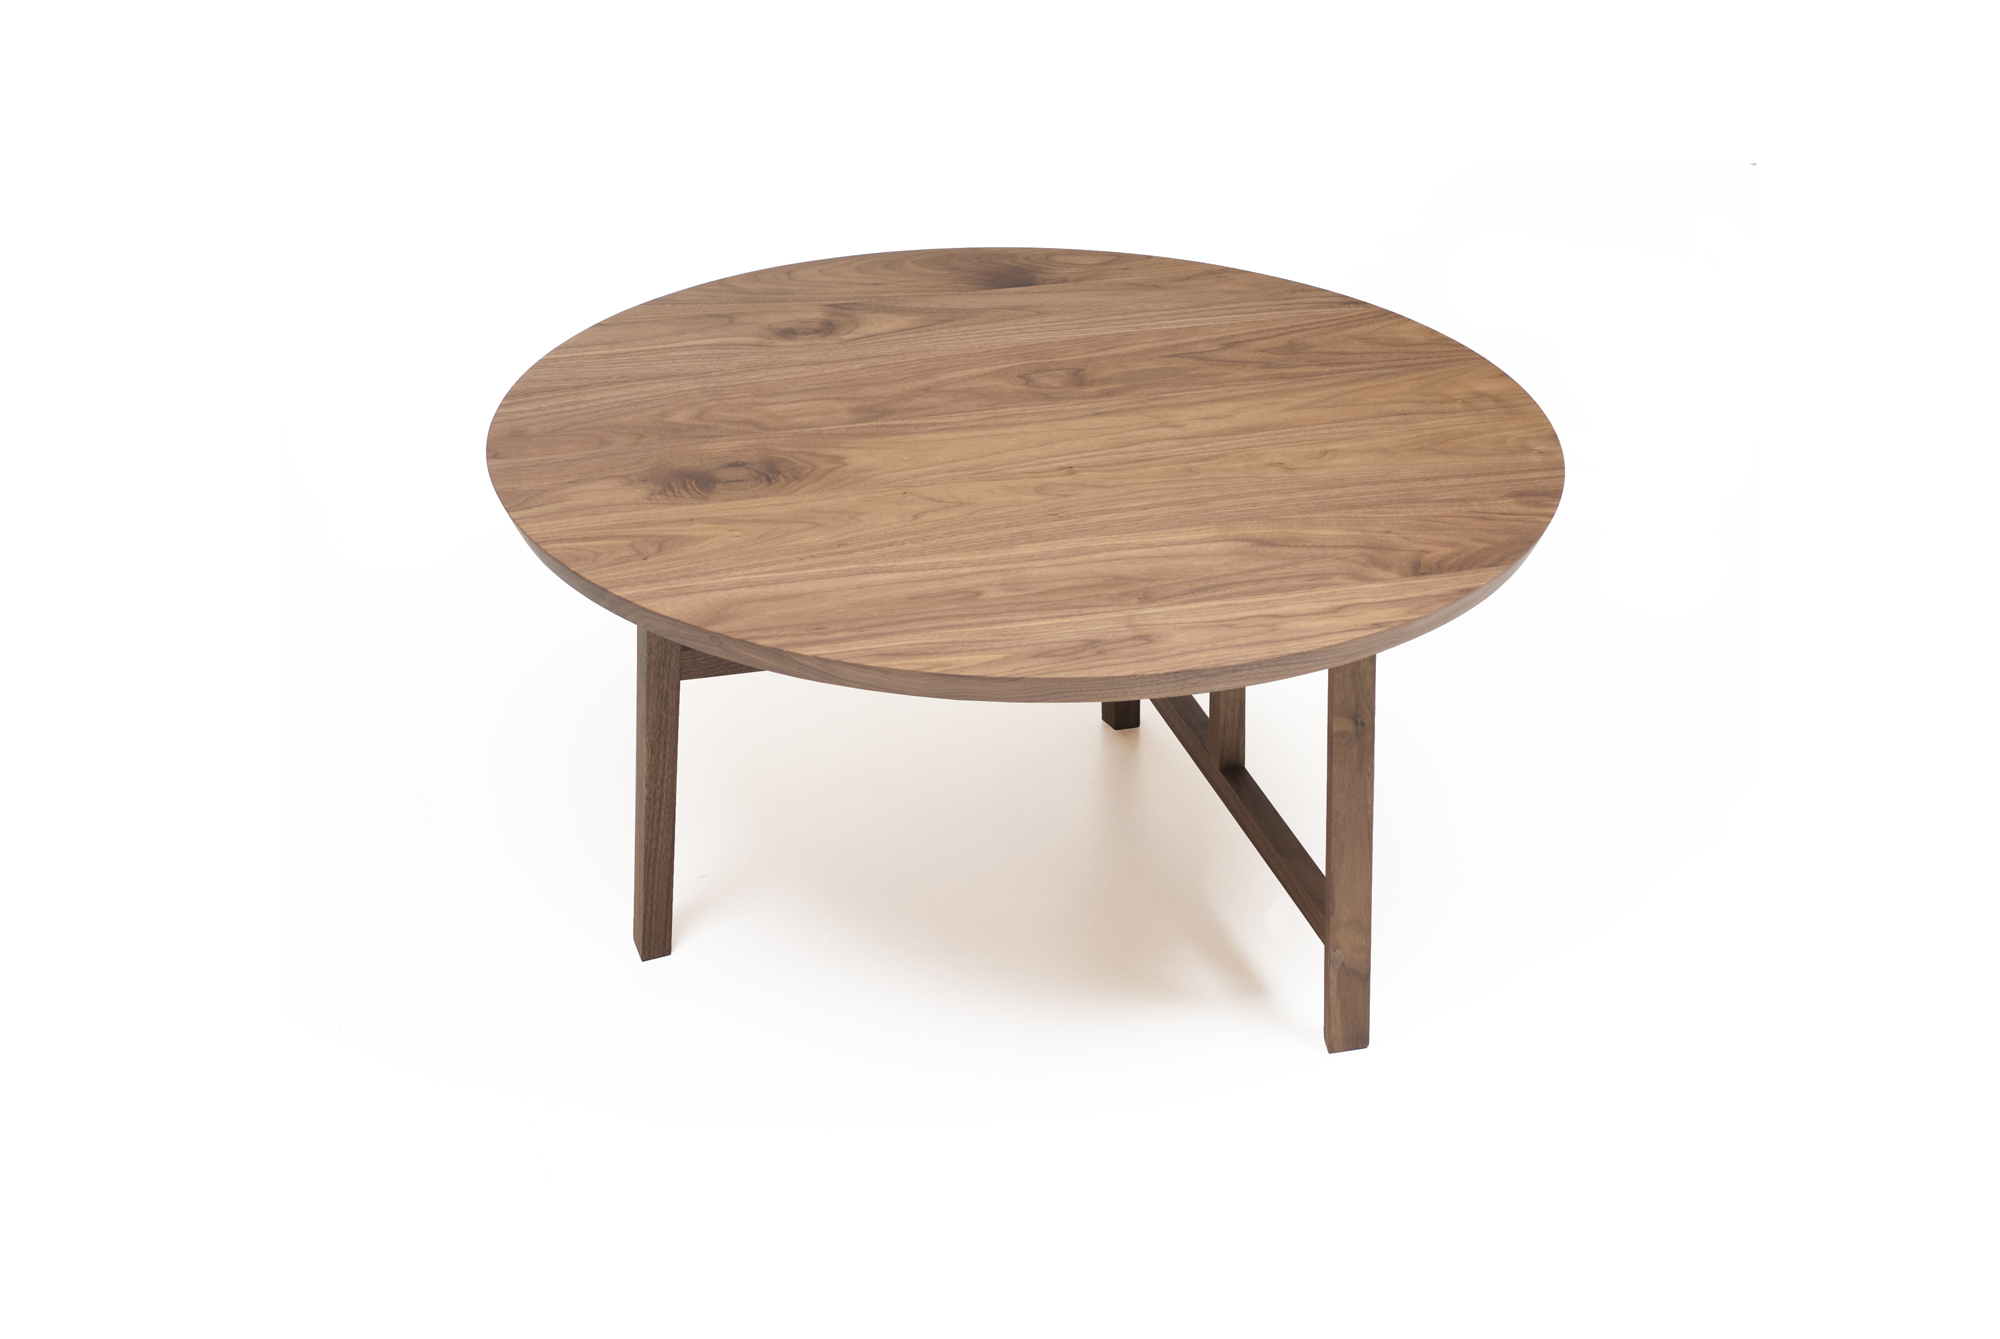 Viewing Neri&hu 754Mm Trio Round Coffee Table With Marble Top Product Intended For Trendy Suspend Ii Marble And Wood Coffee Tables (Gallery 17 of 20)